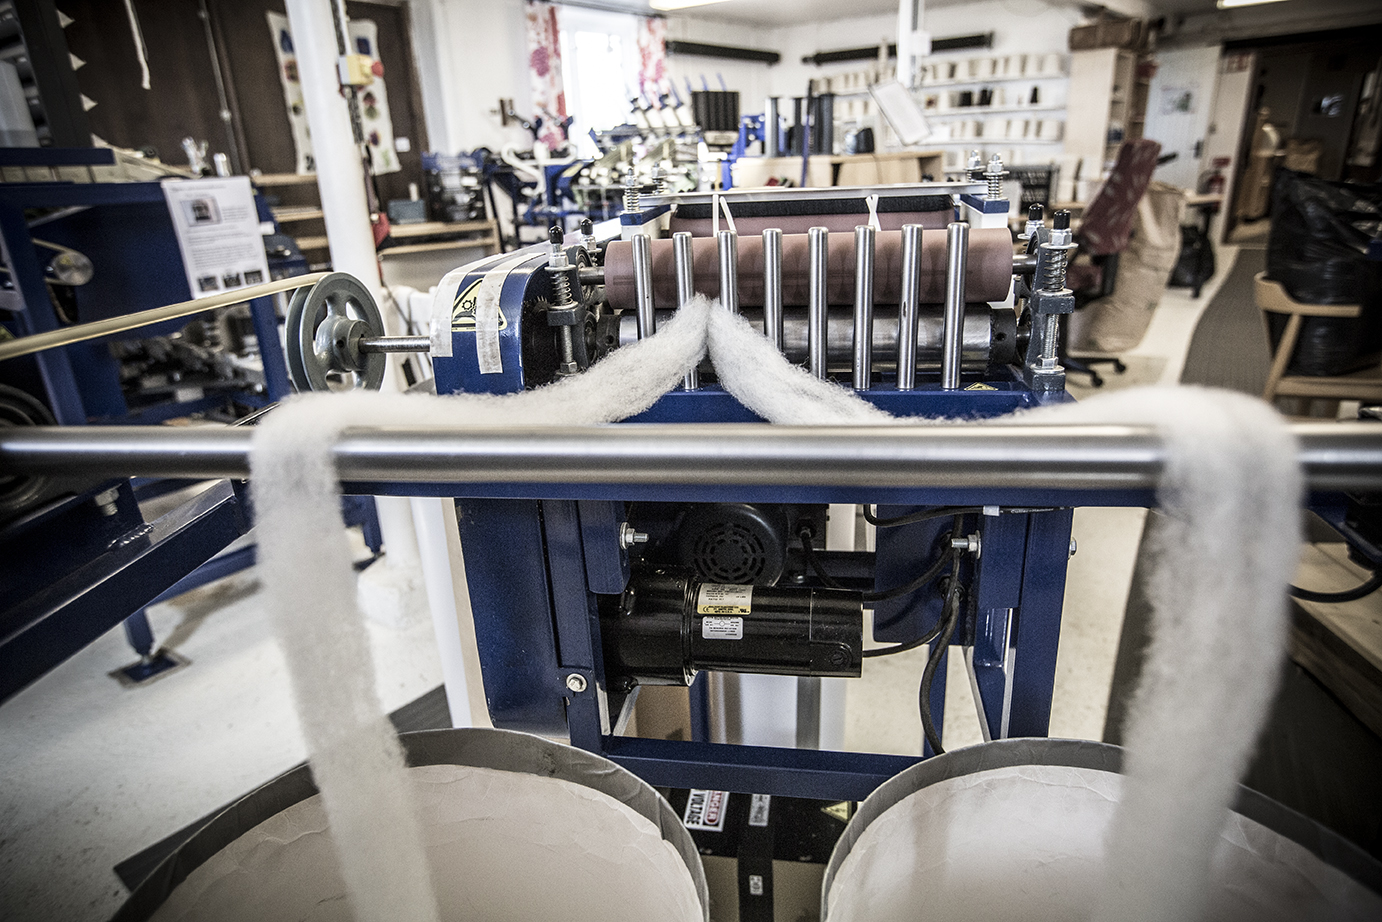 Two streams of fluffy wool tops are coming from a machine in a small factory